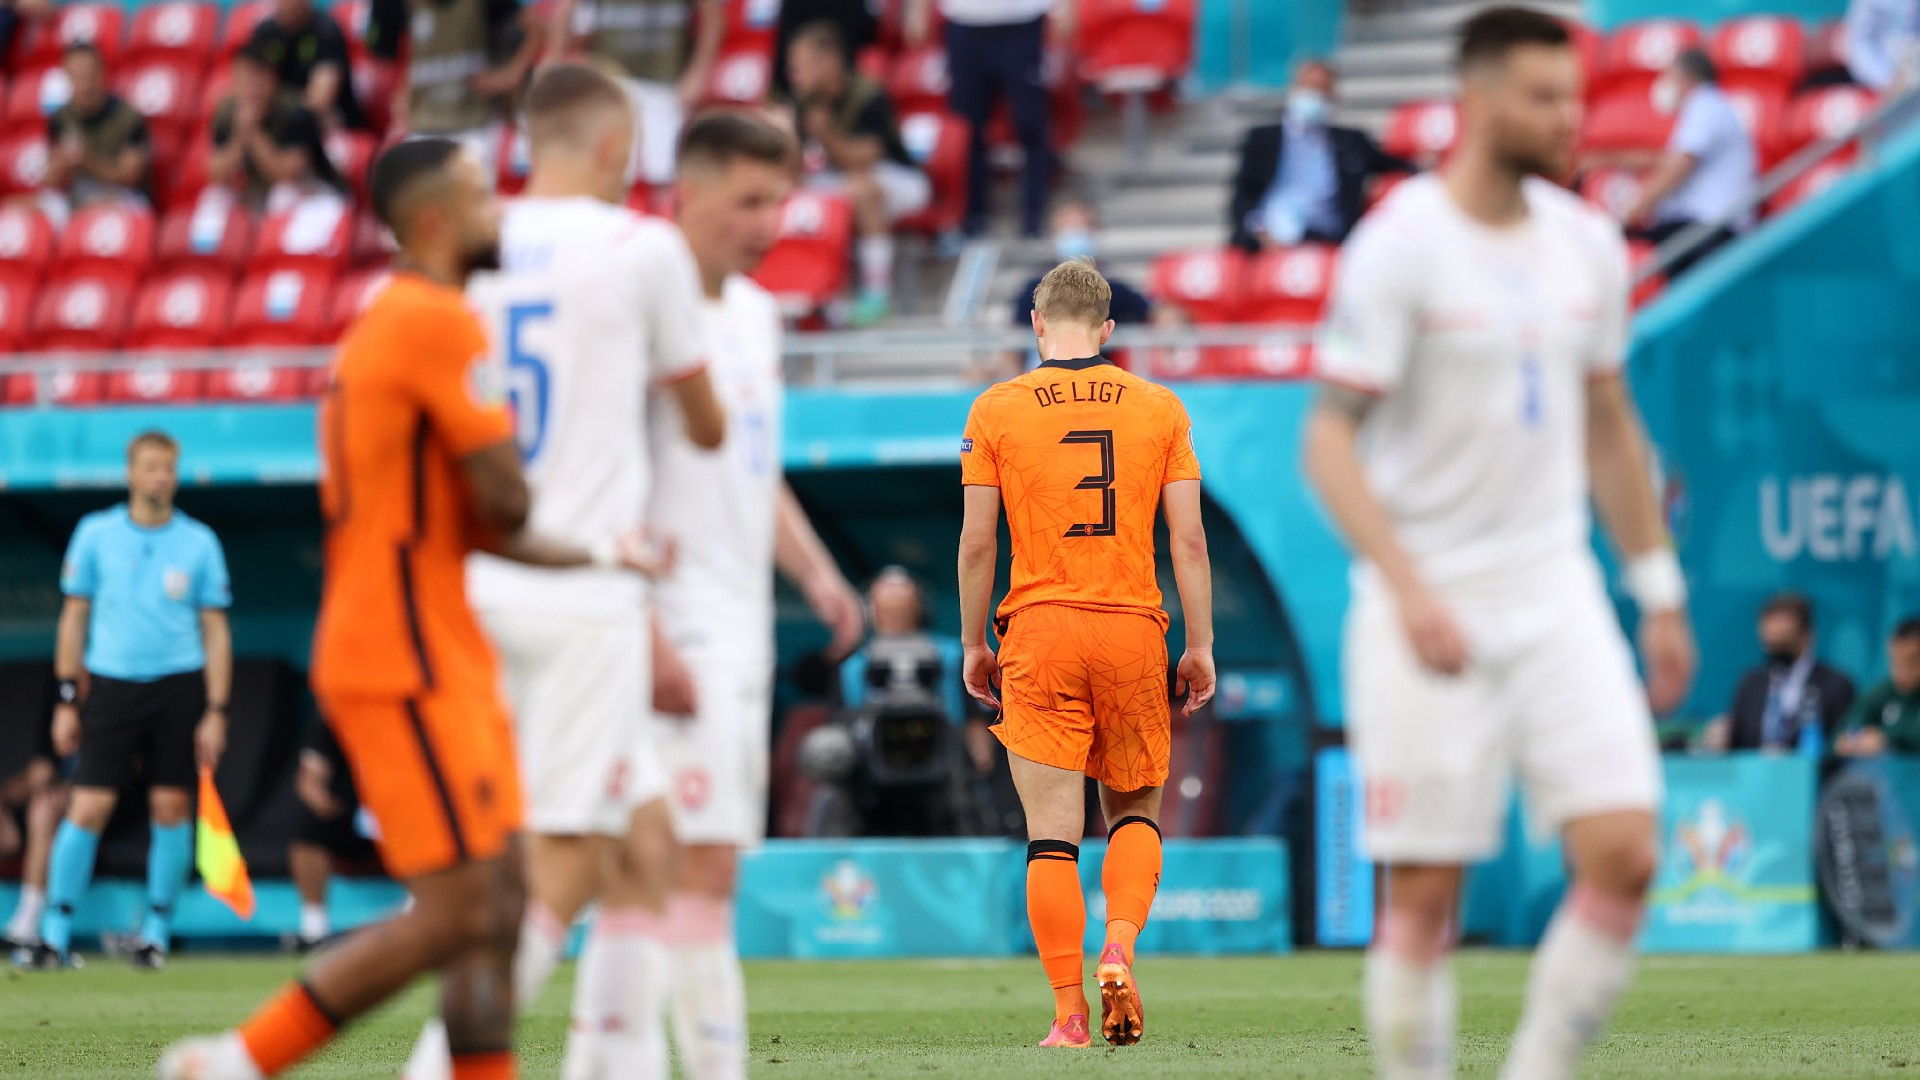 De Ligt creates unwanted Euros history as Netherlands crash out to Czechs